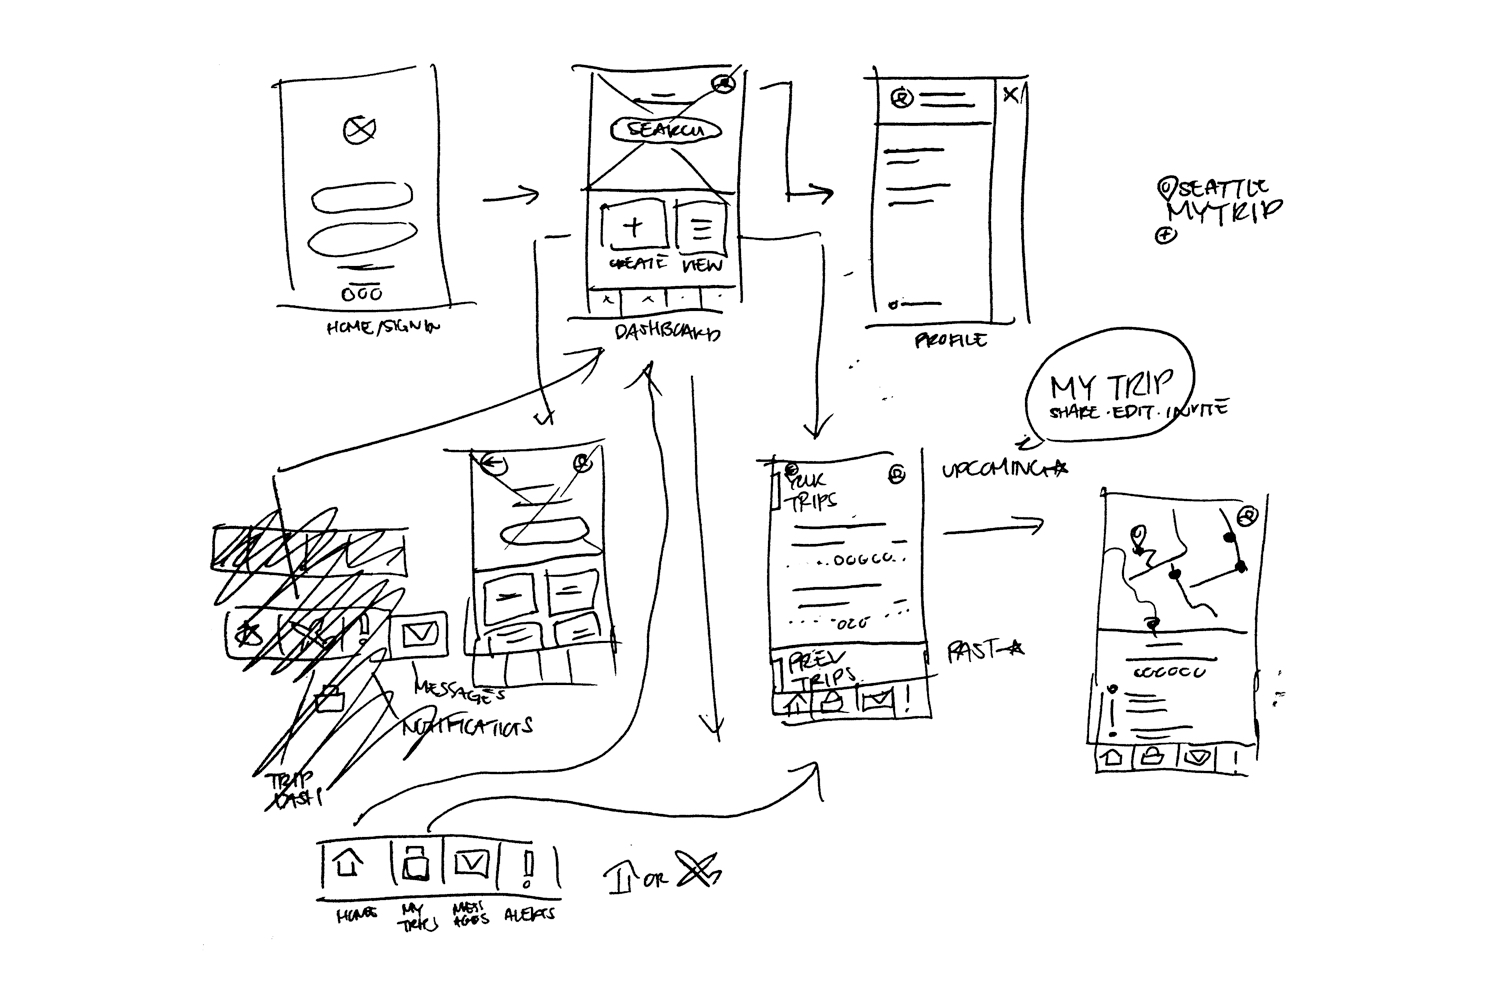 Wireframing - Initial wireframe sketching allowed me to rapidly map out how Planr's interface would potentially look and interact from screen to screen. The number of steps required to create, select, vote, and save a trip meant wireframing more screens than I anticipated.